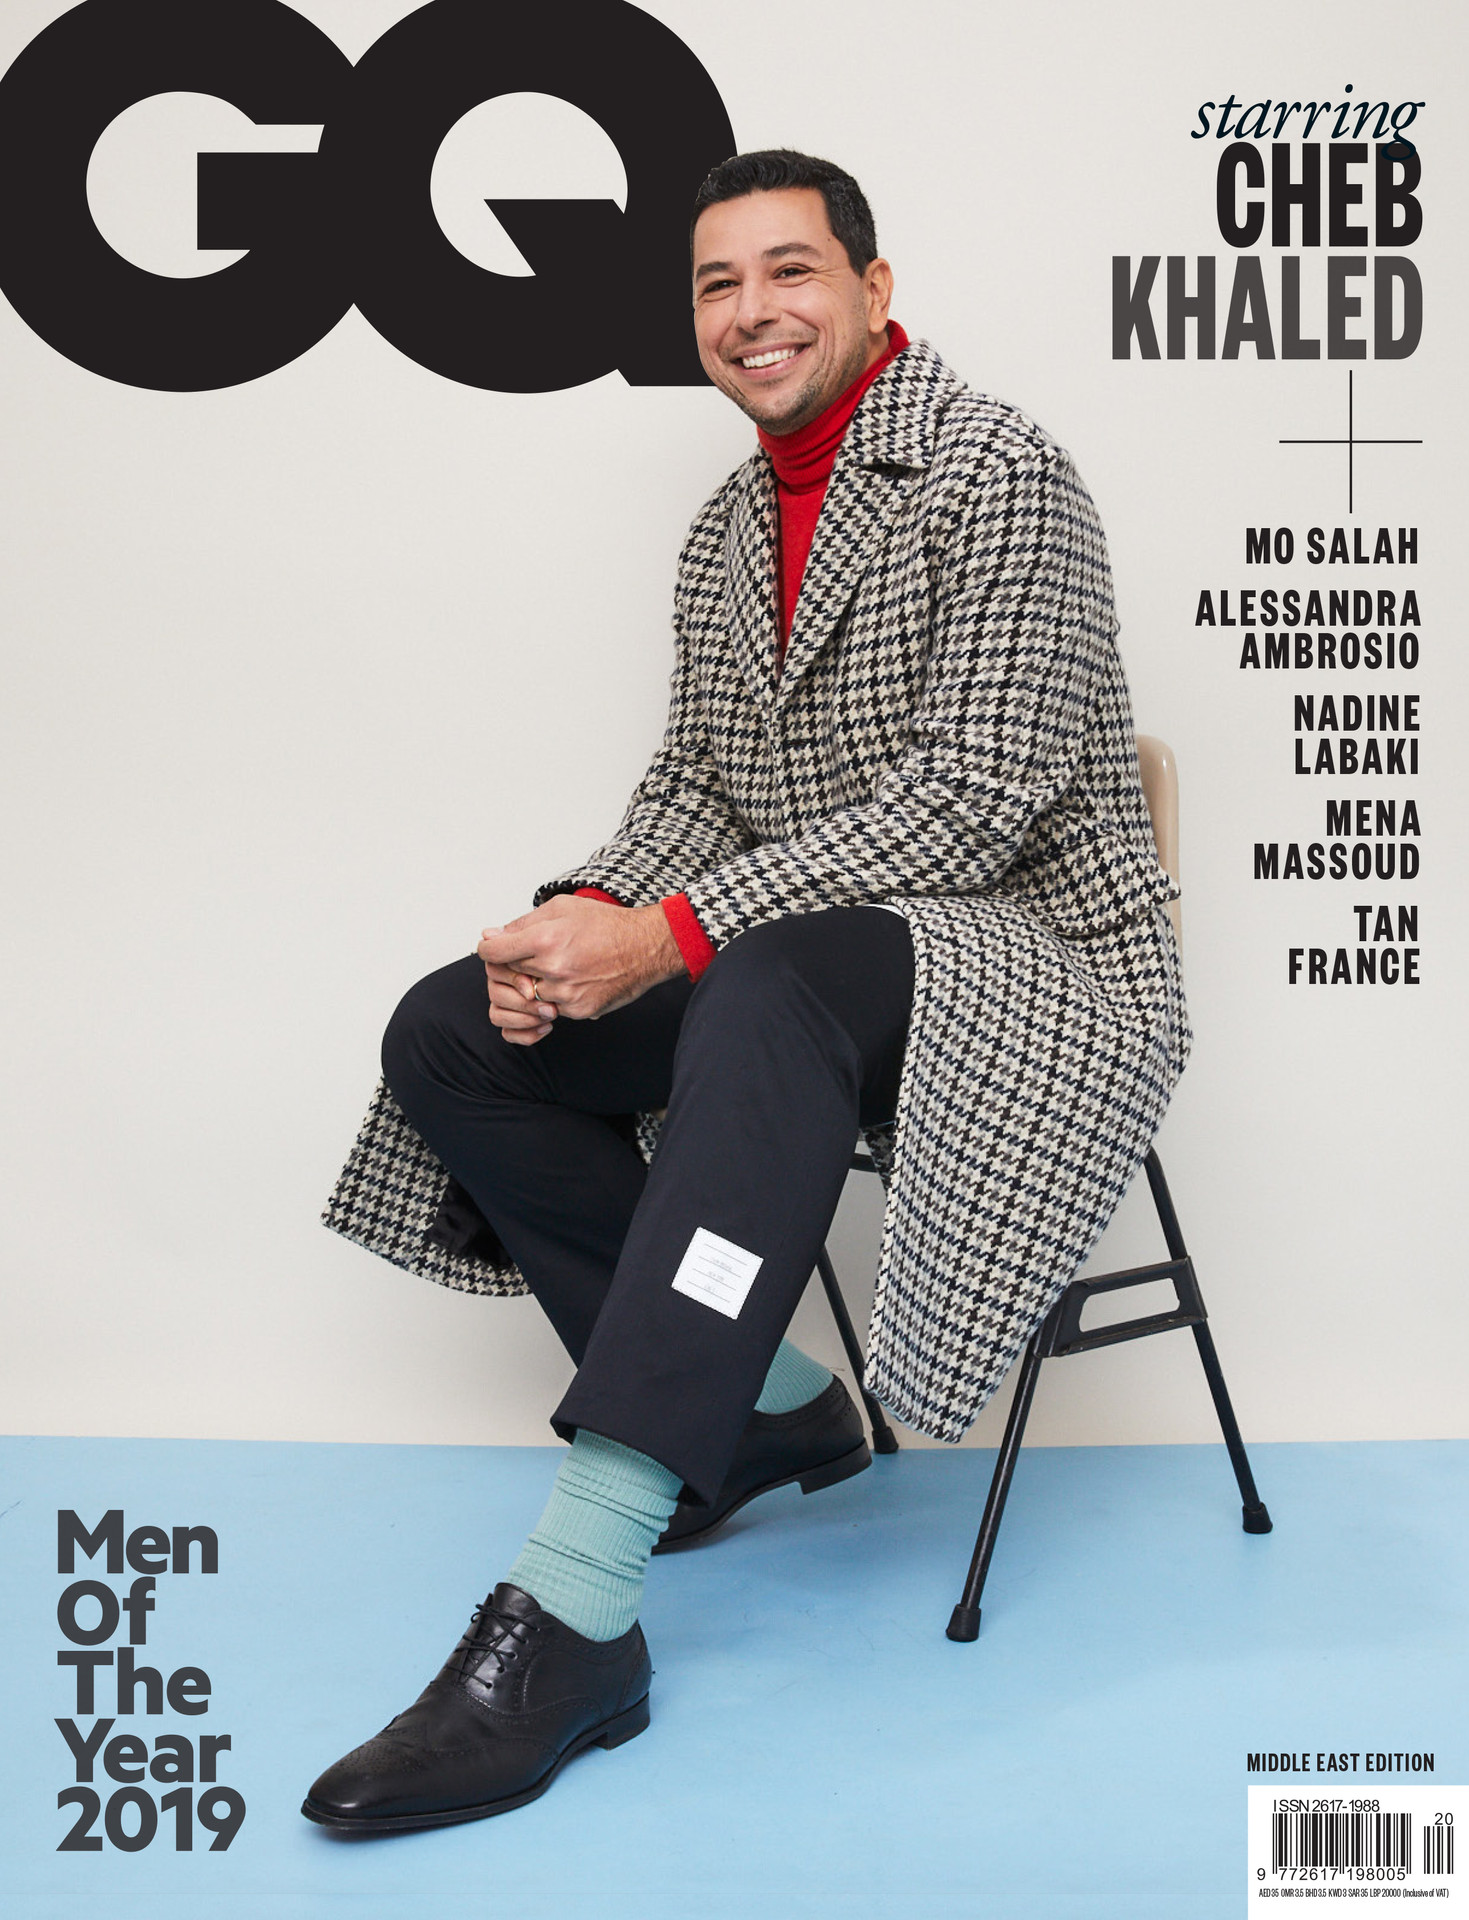 GQ MIDDLE EAST - AYMAN MOHYELDIN